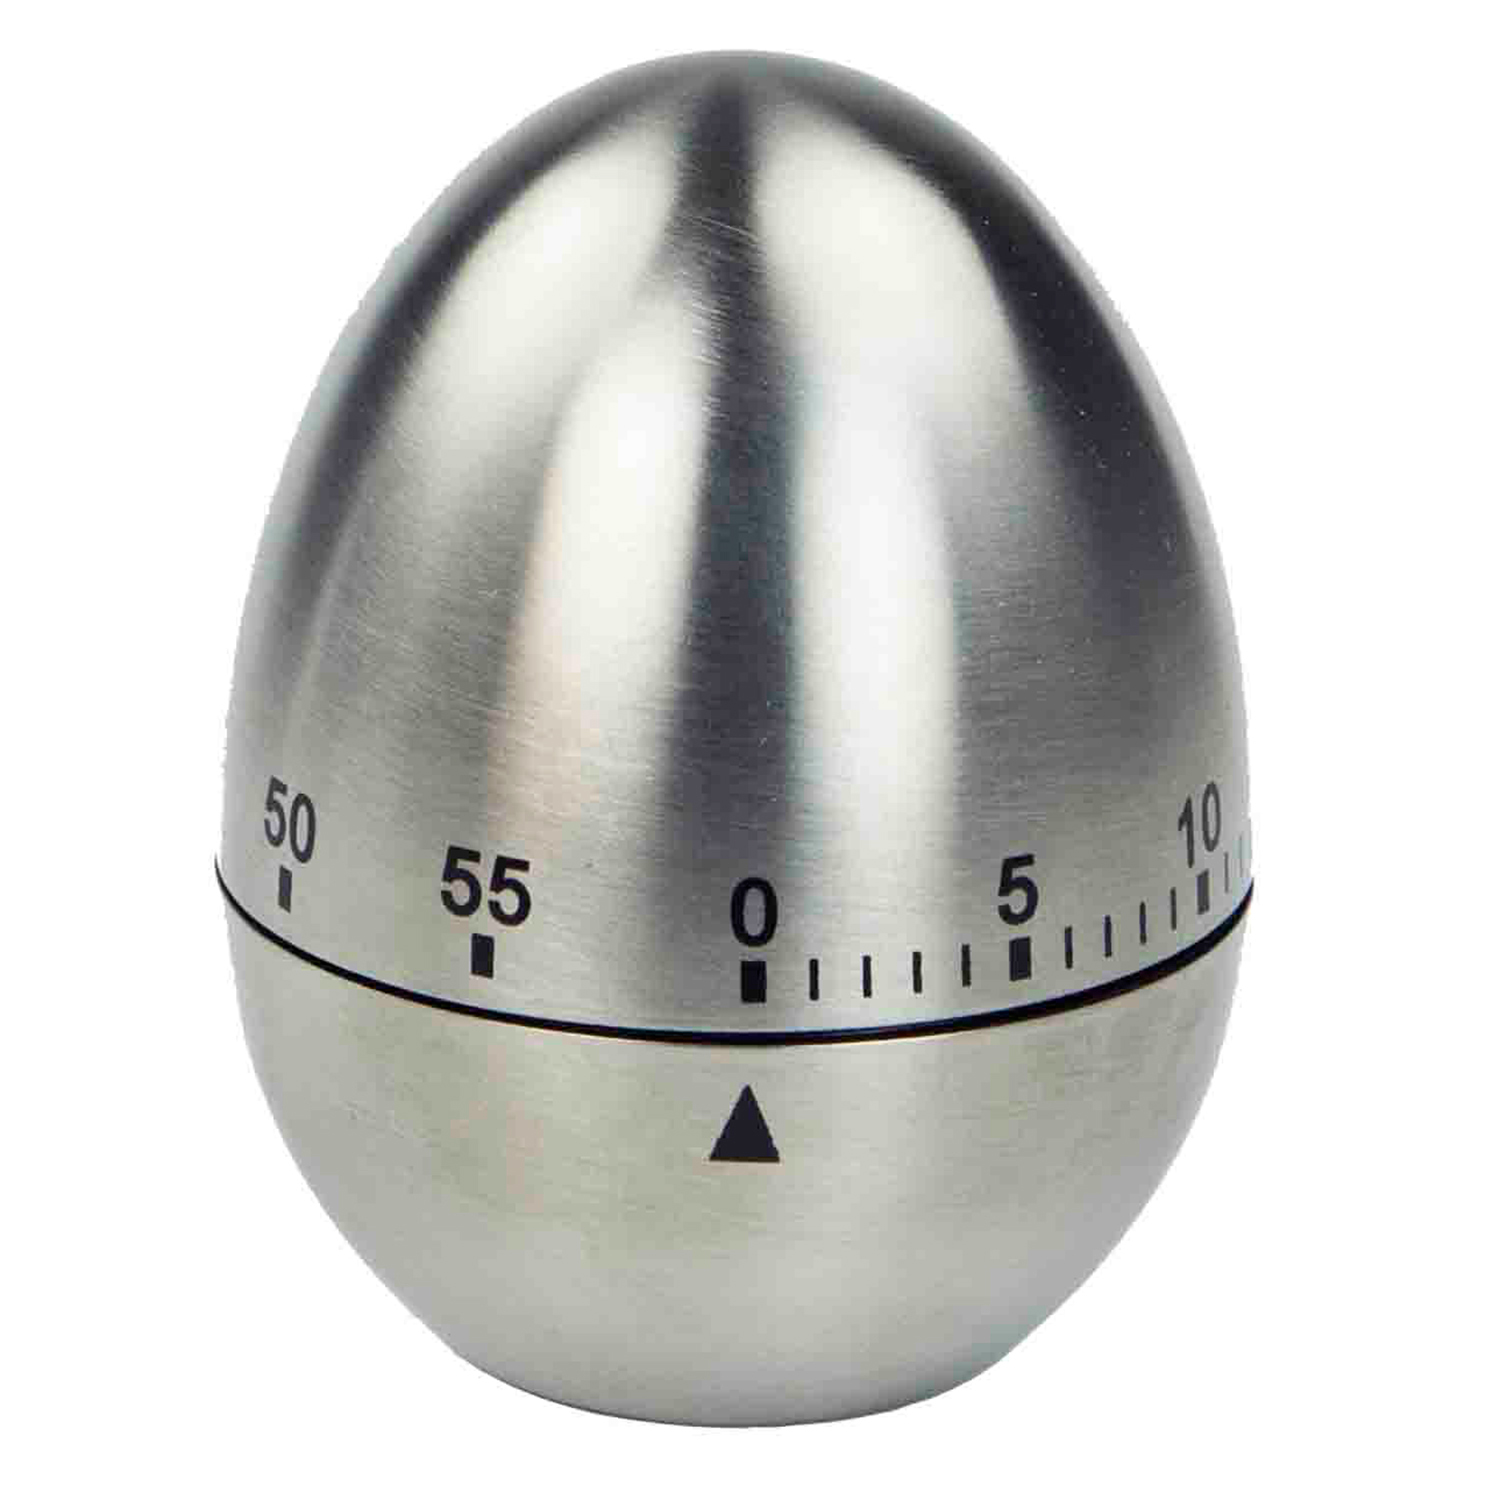 Stainless Steel Mechanical Egg Shape Timer